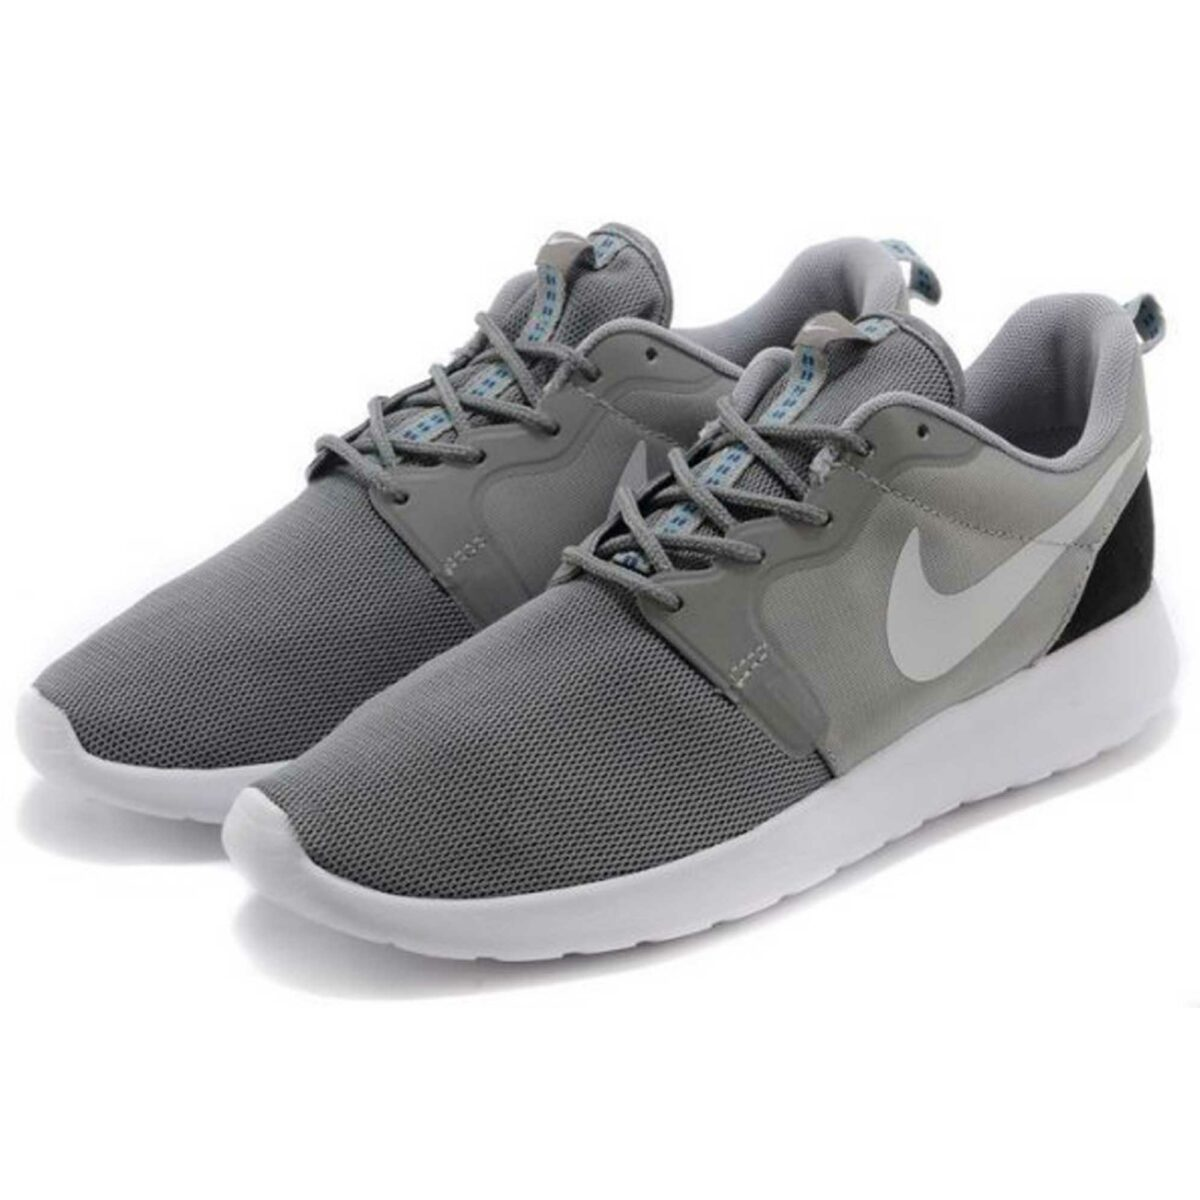 nike roshe one grey white black 636220_011 купить